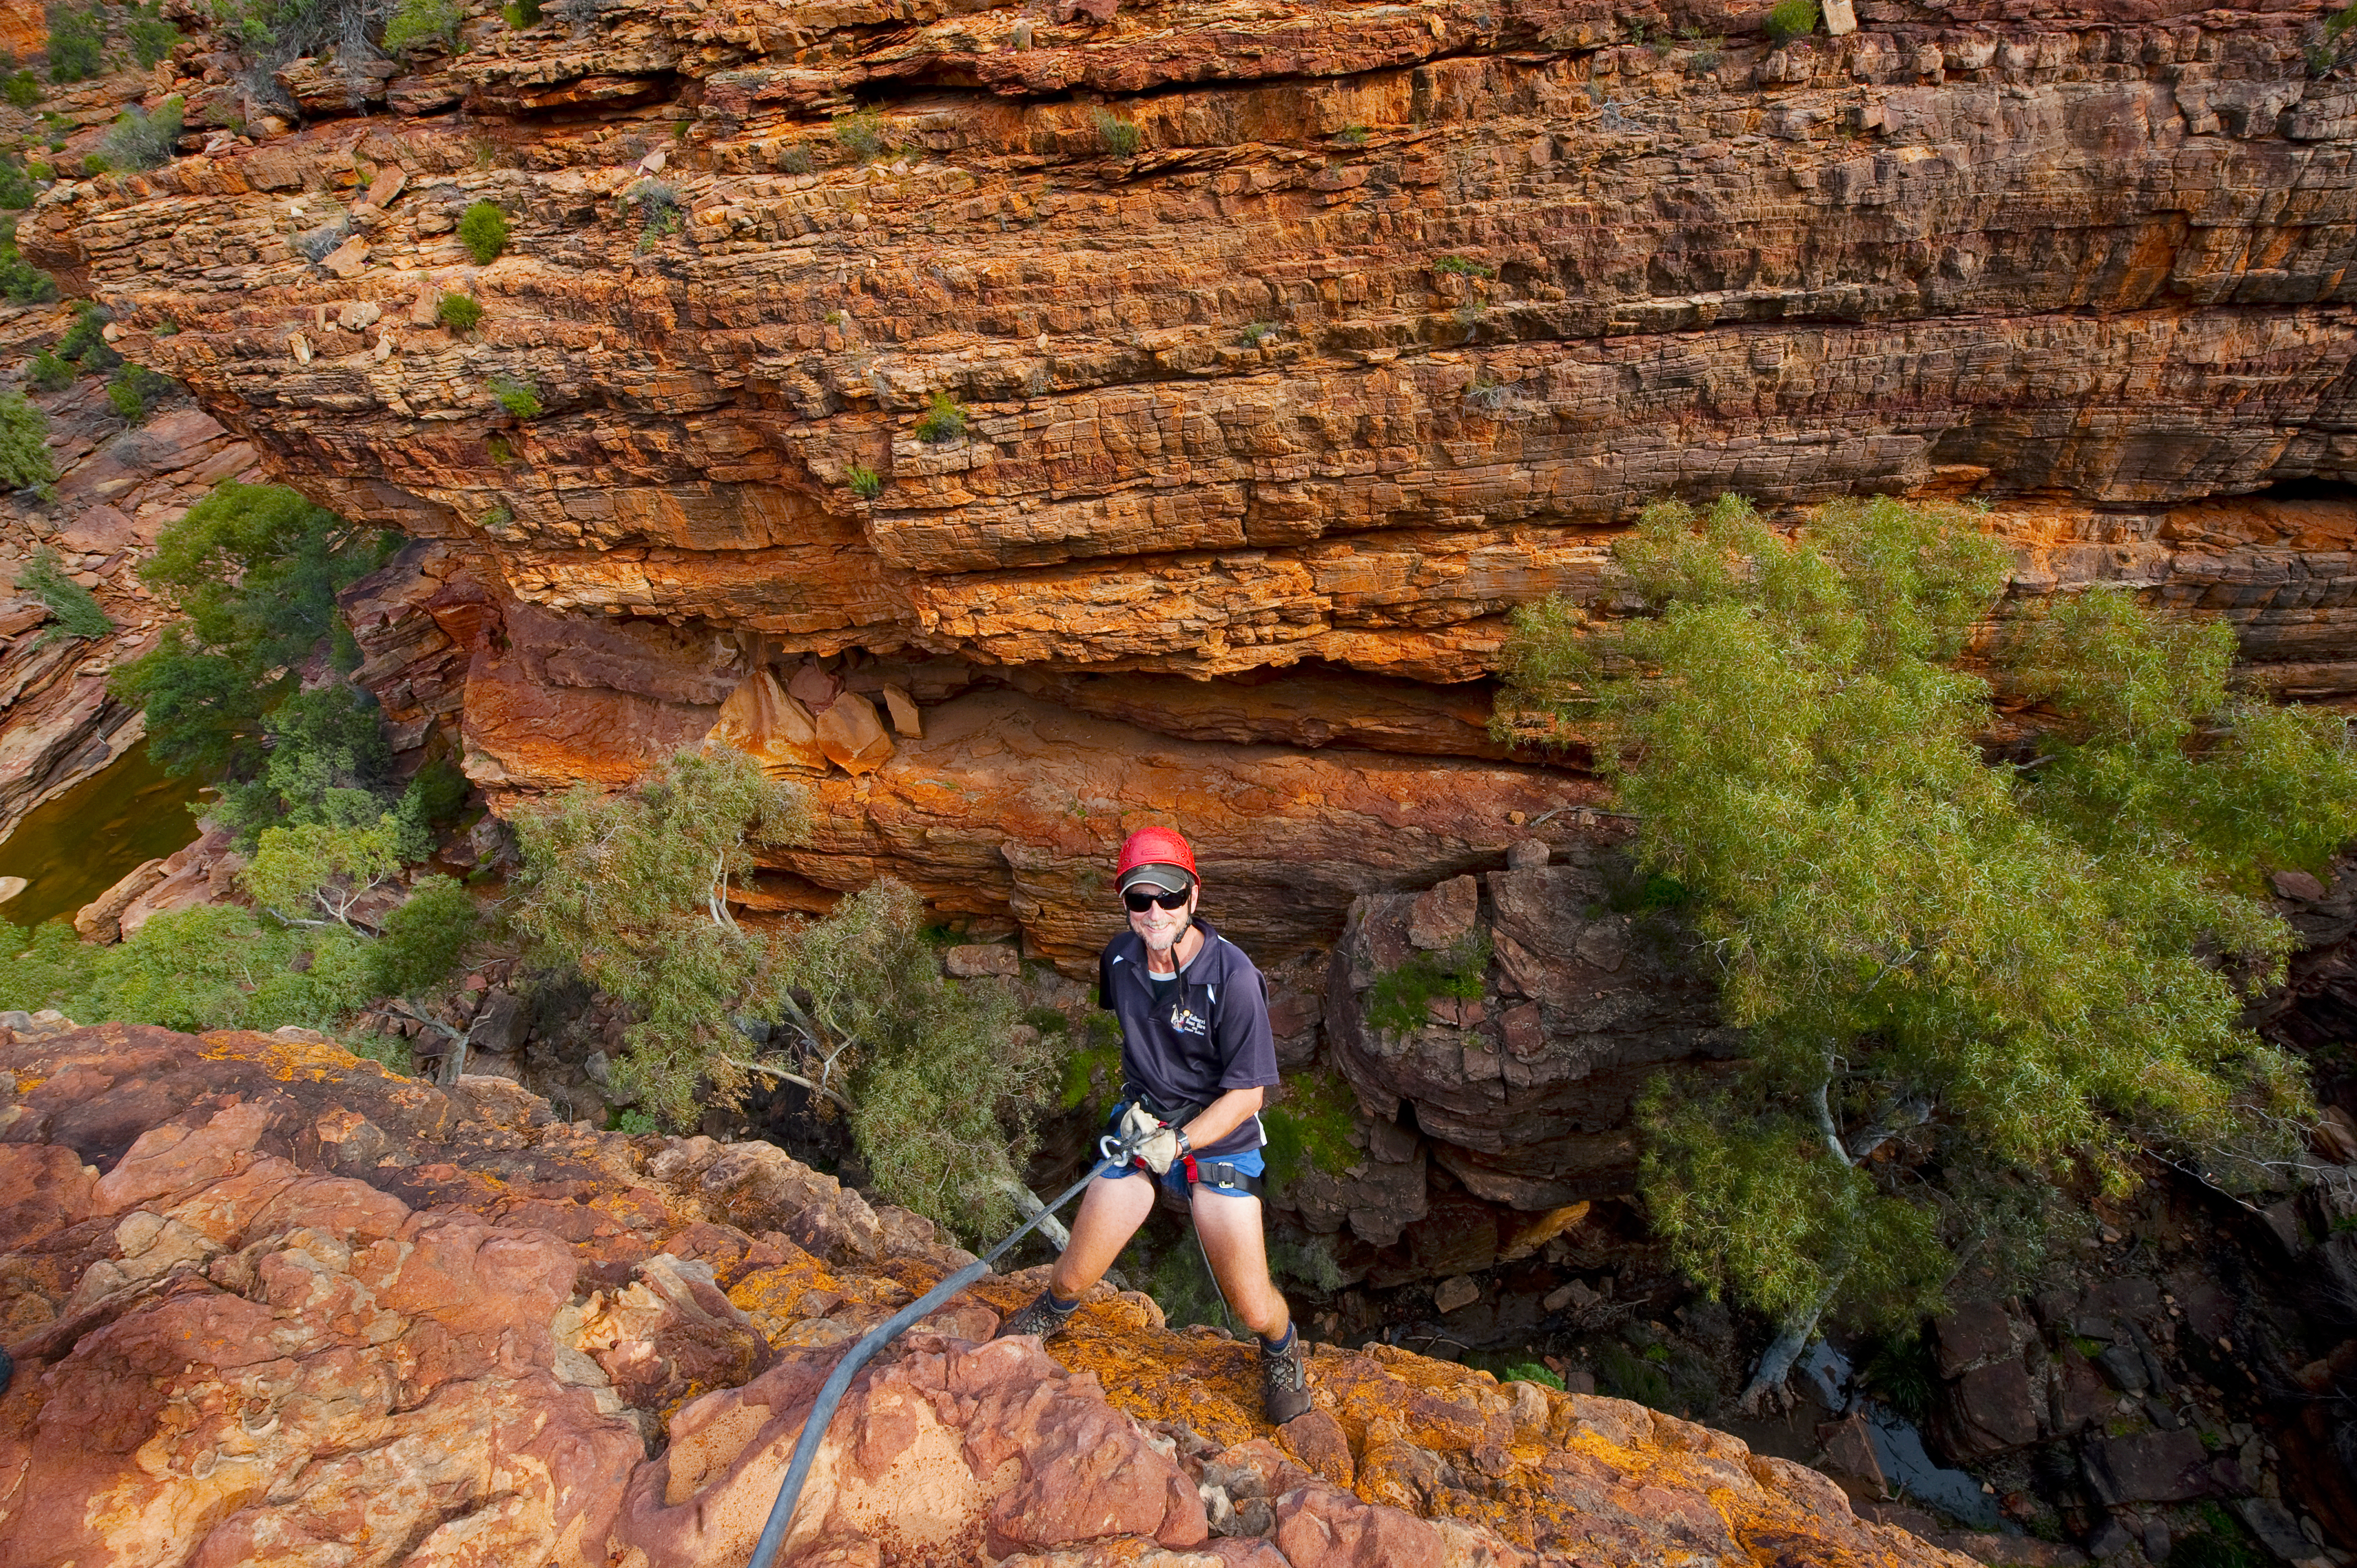 35m of fun in the Z-Bend Gorge!